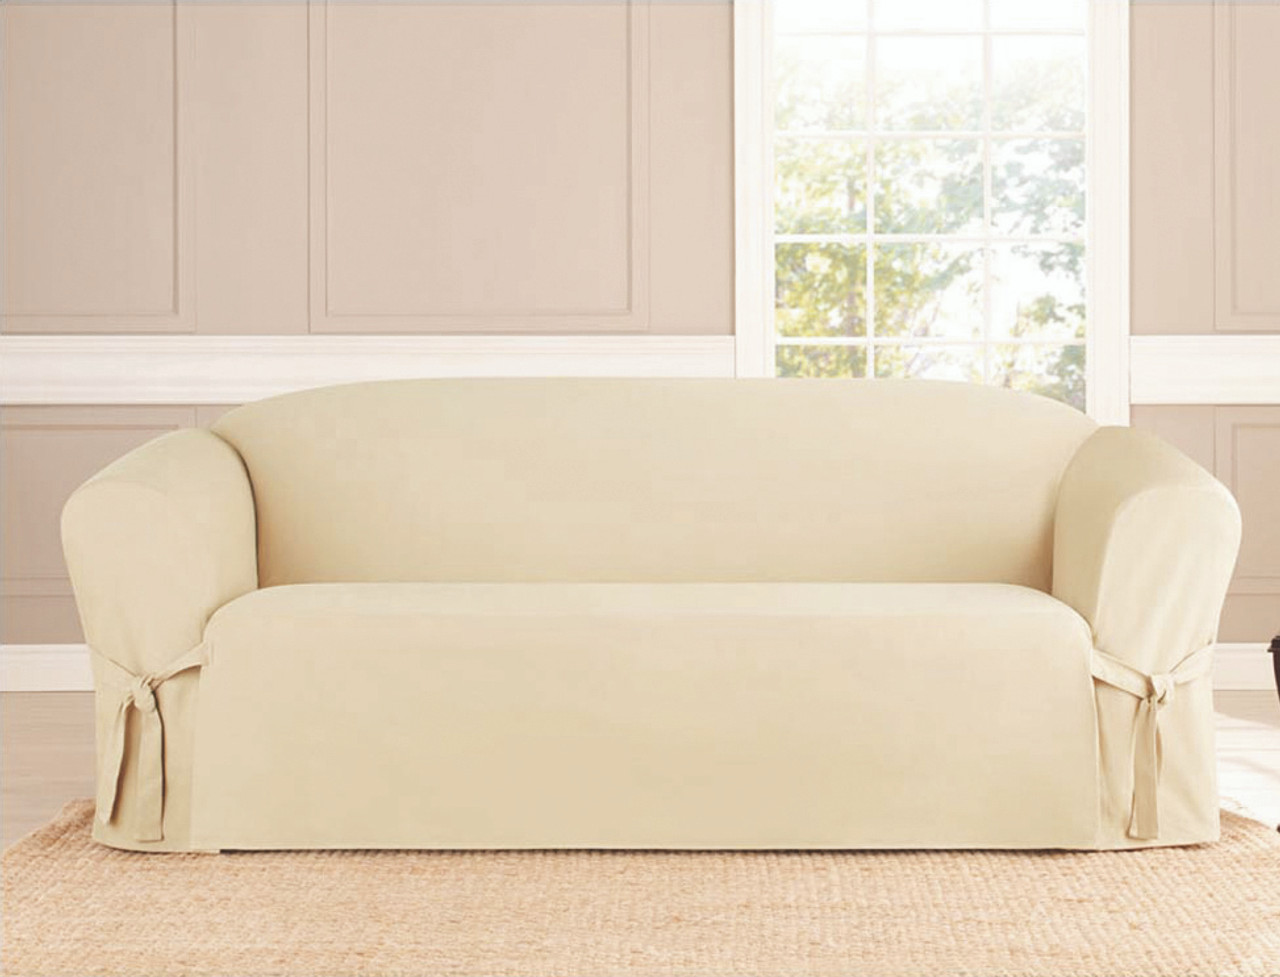 sure fit stretch plush 2 piece t sofa slipcover pillows for cream leather suede slipcovers couch bath ...